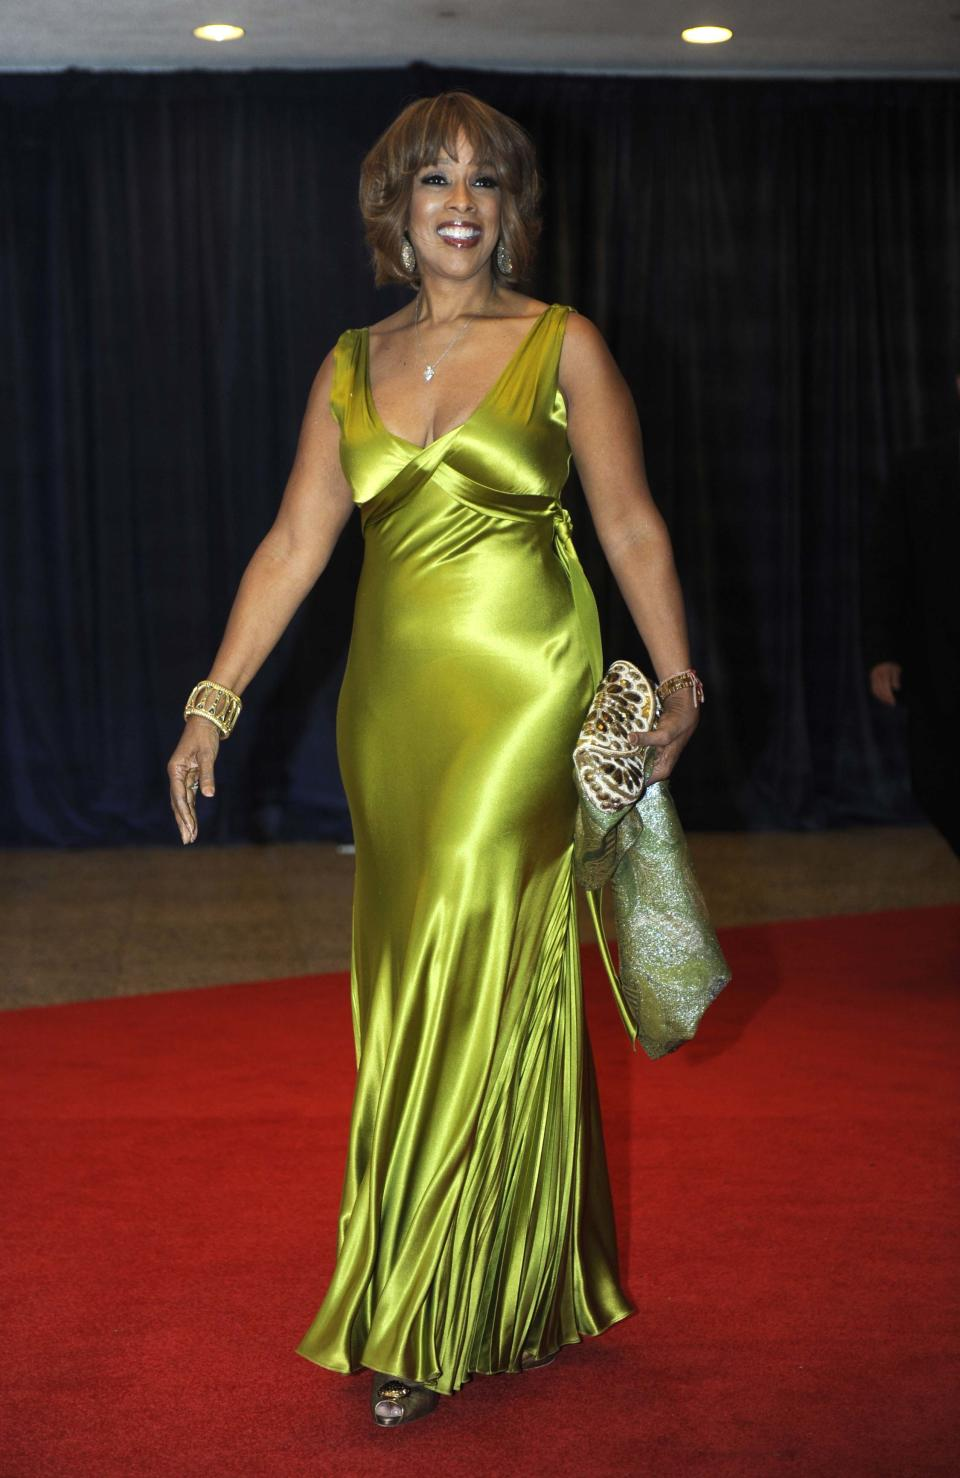 Gayle King arrives at the White House Correspondents' Association Dinner on Saturday, April 28, 2012, in Washington. (AP Photo/Kevin Wolf)